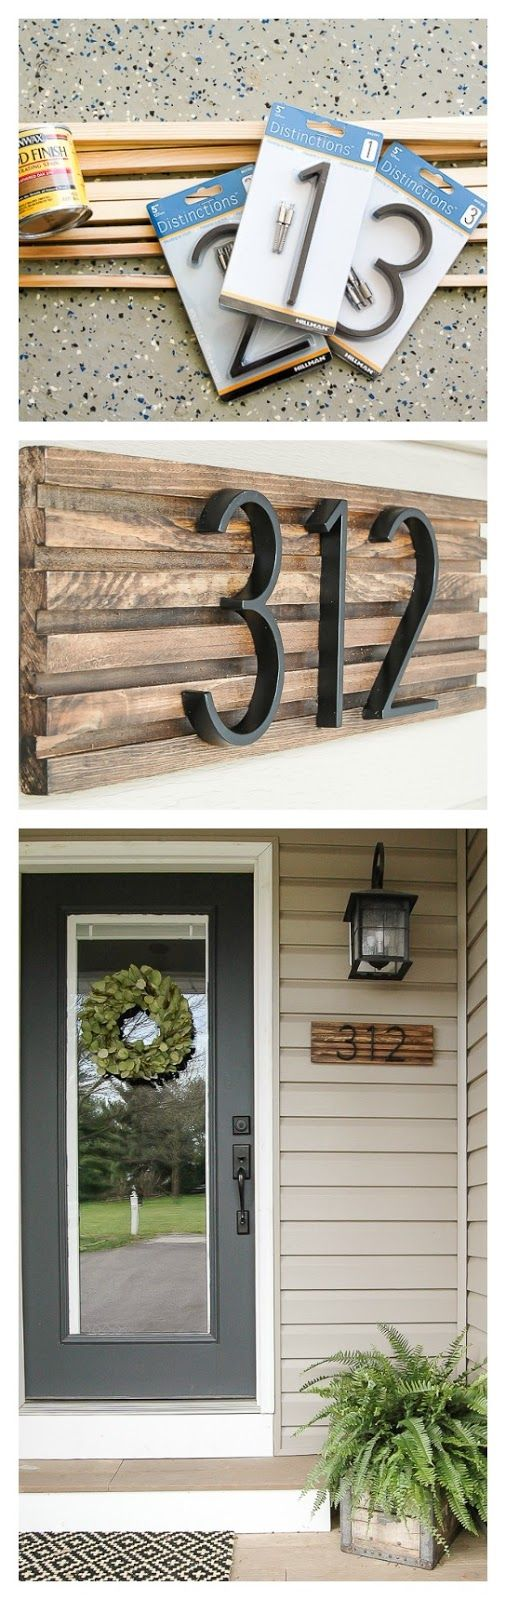 DIY House Number Sign Using Square Dowels.